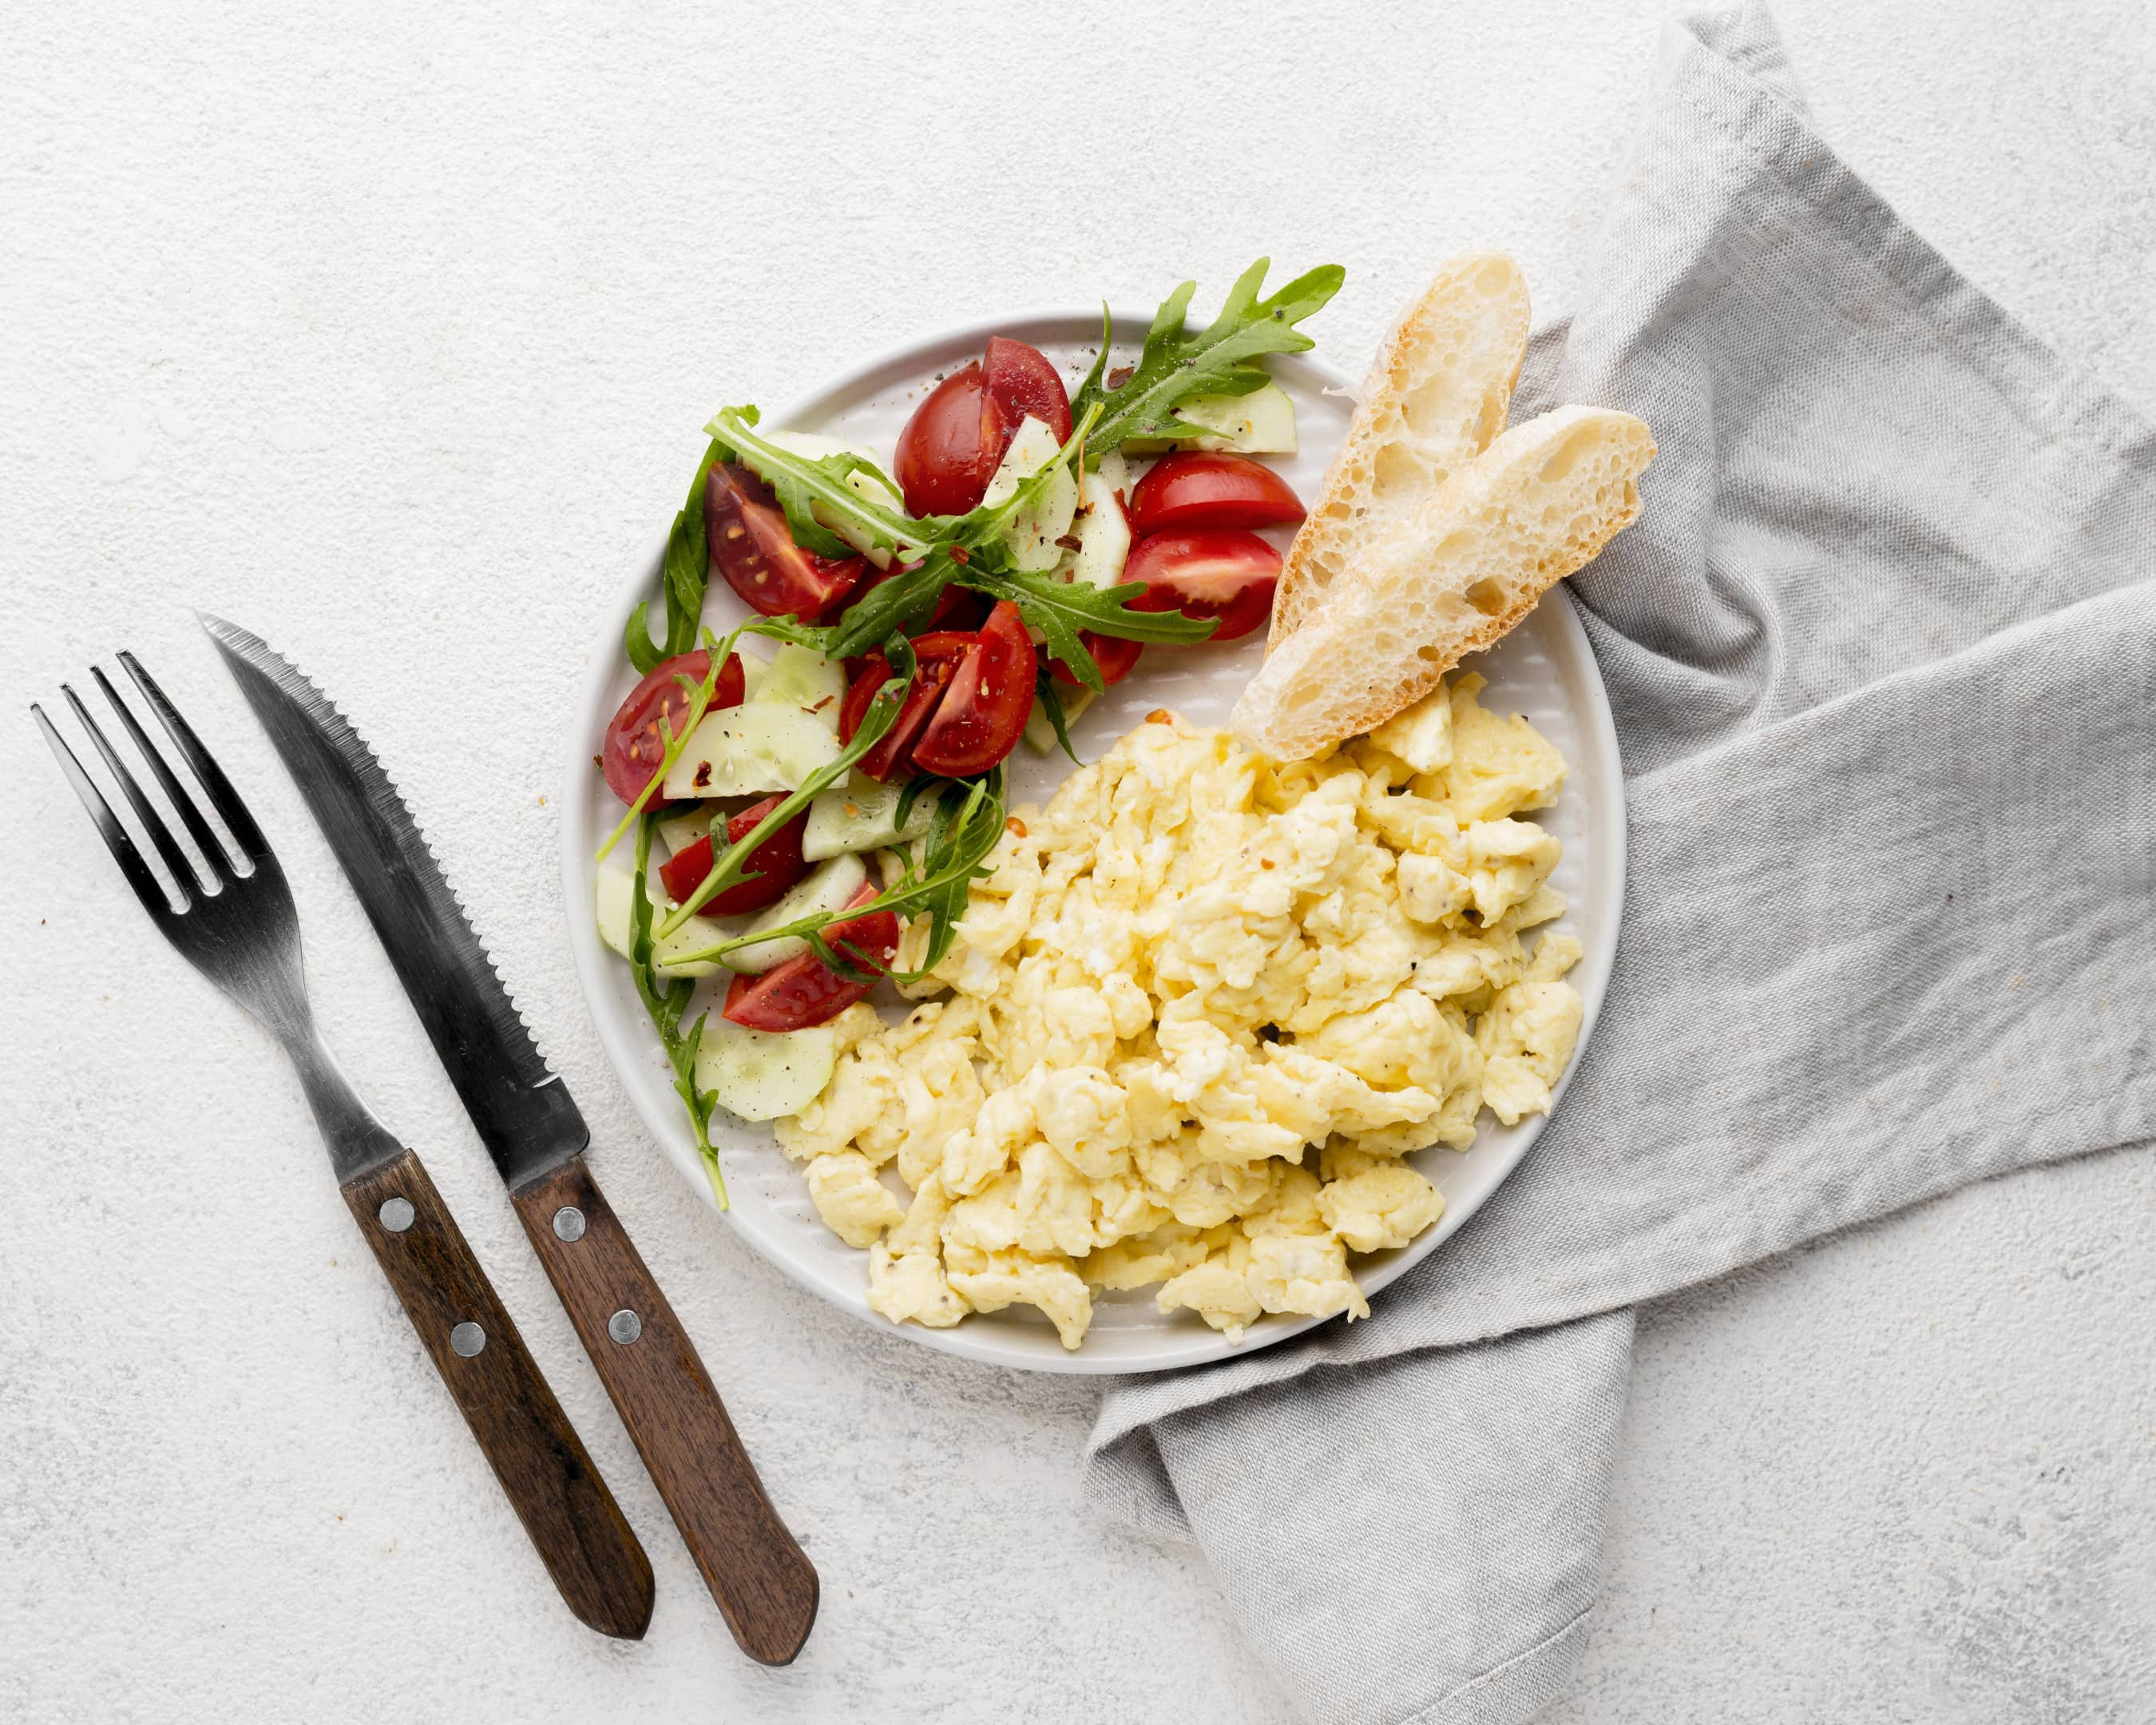 Plate of scrambled eggs and salad